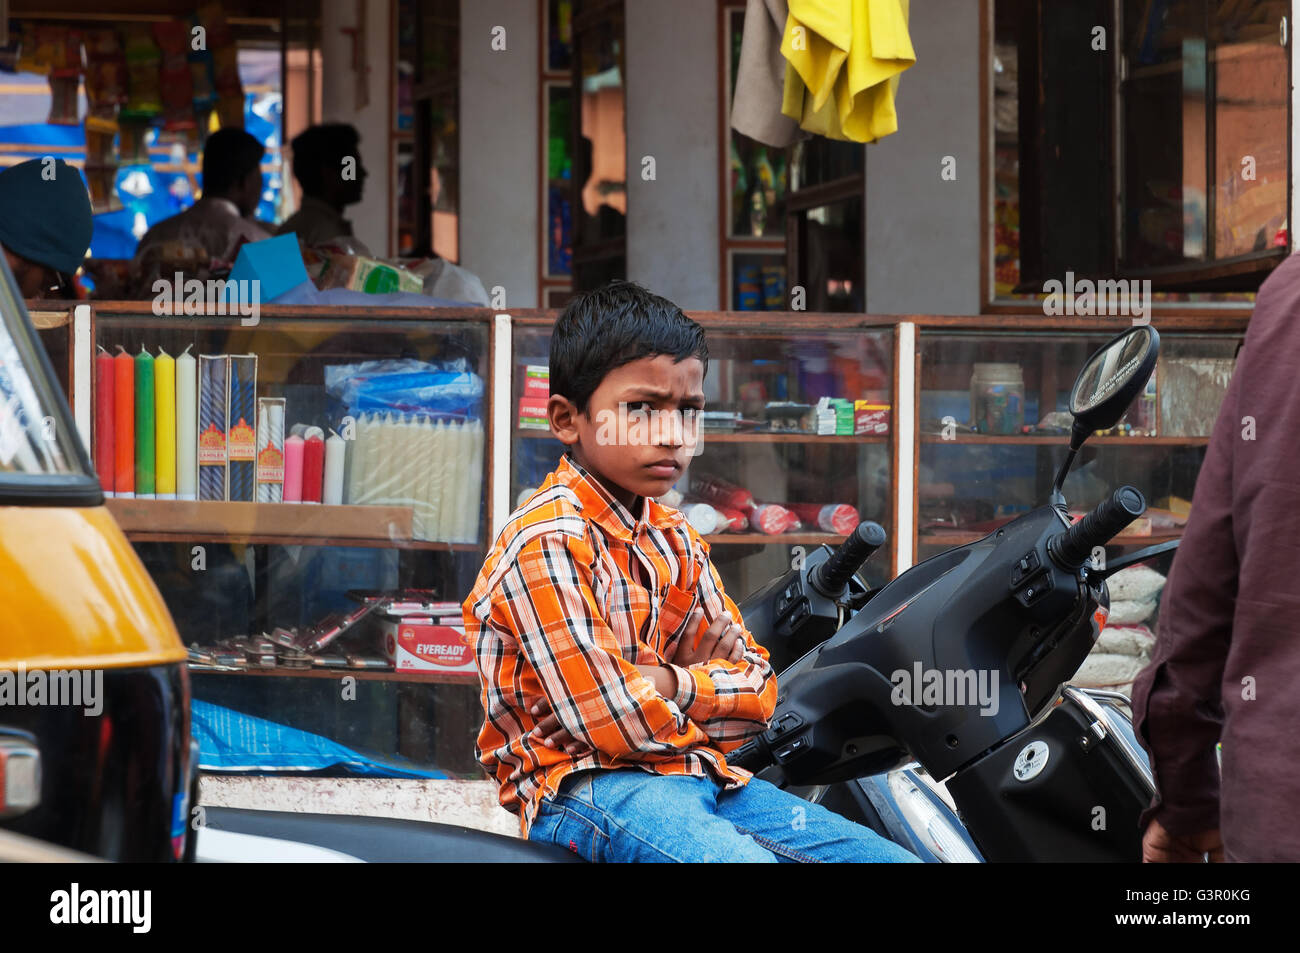 Unidentified Indian young boy sitting on the bike at the Russell market. Russell Market - Stock Image